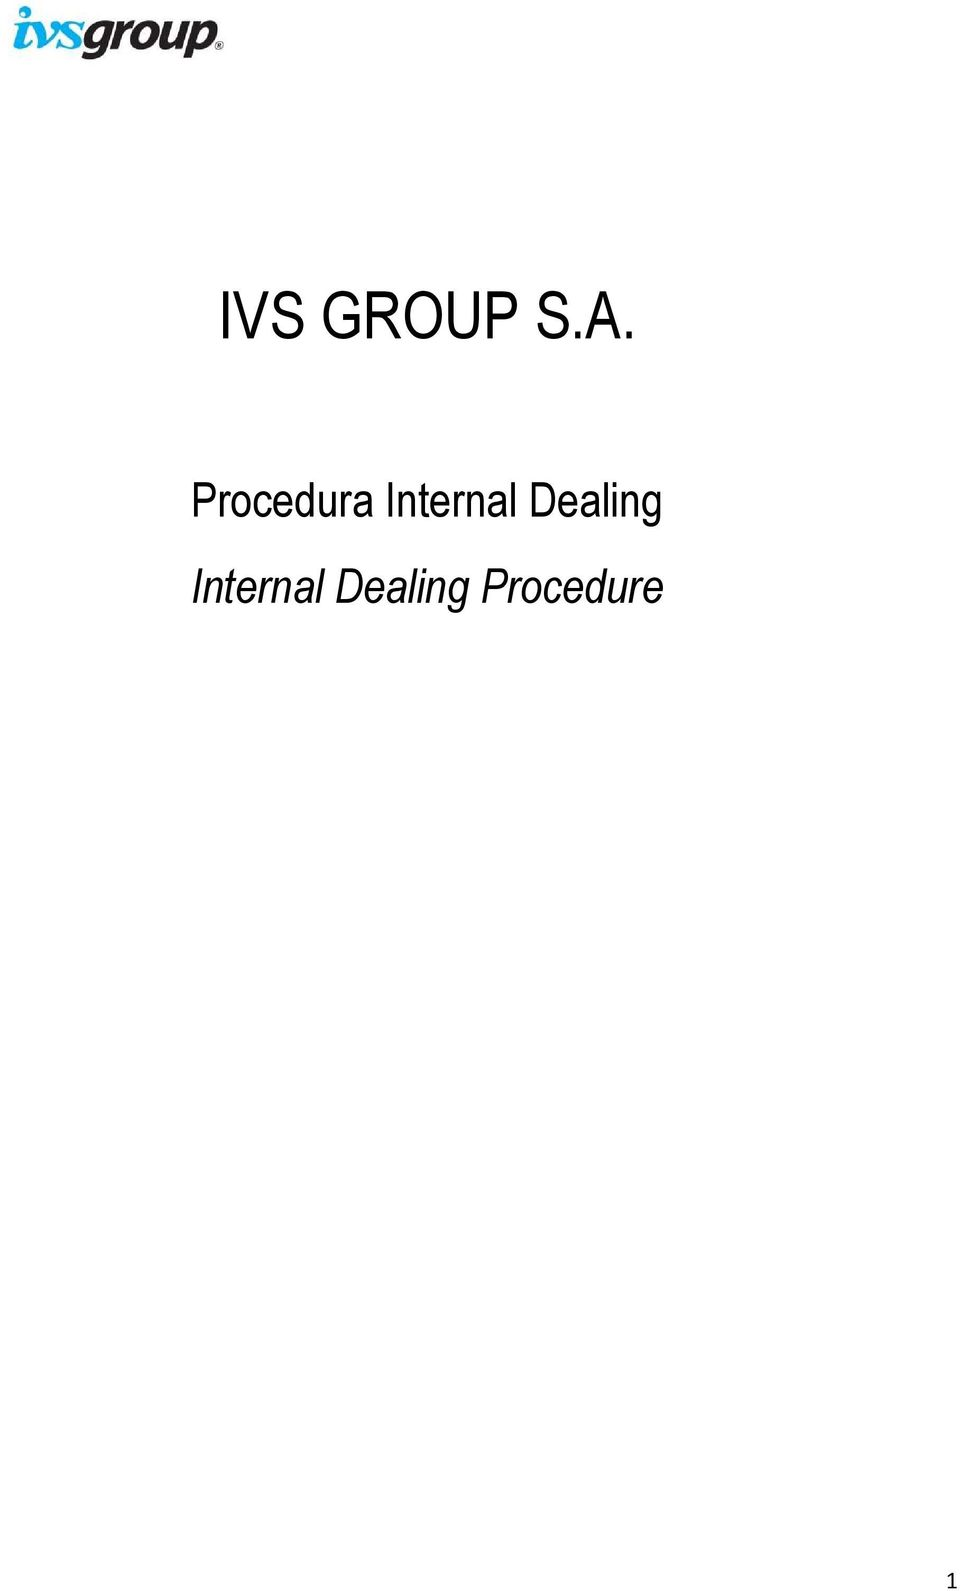 Internal Dealing